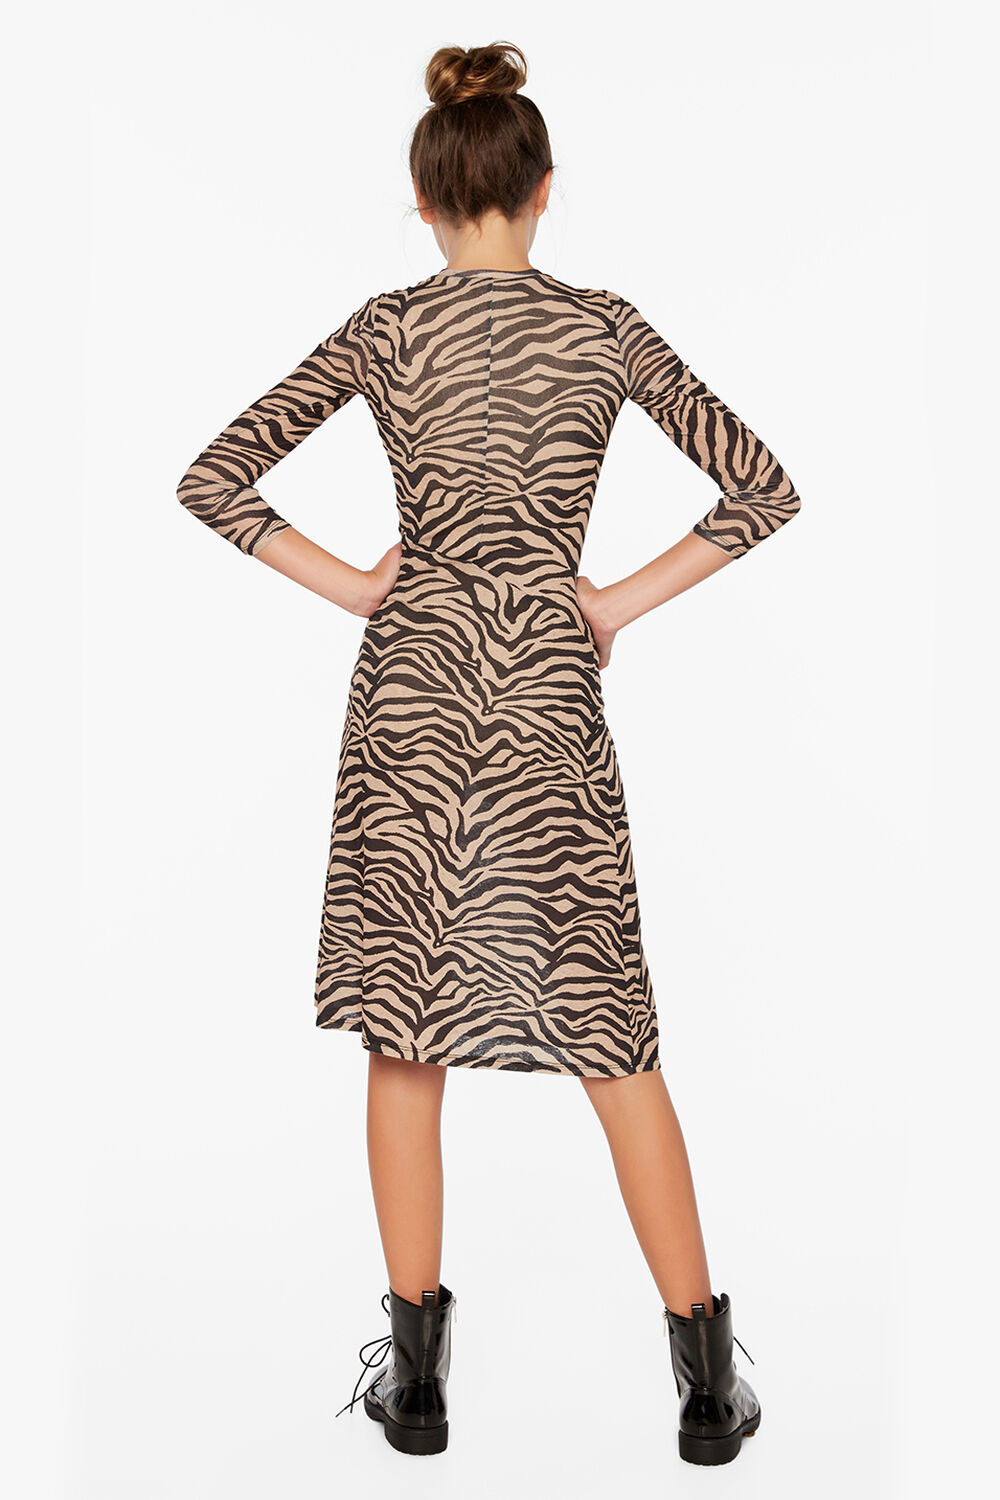 ZEBRA MESH DRESS in colour TAPIOCA